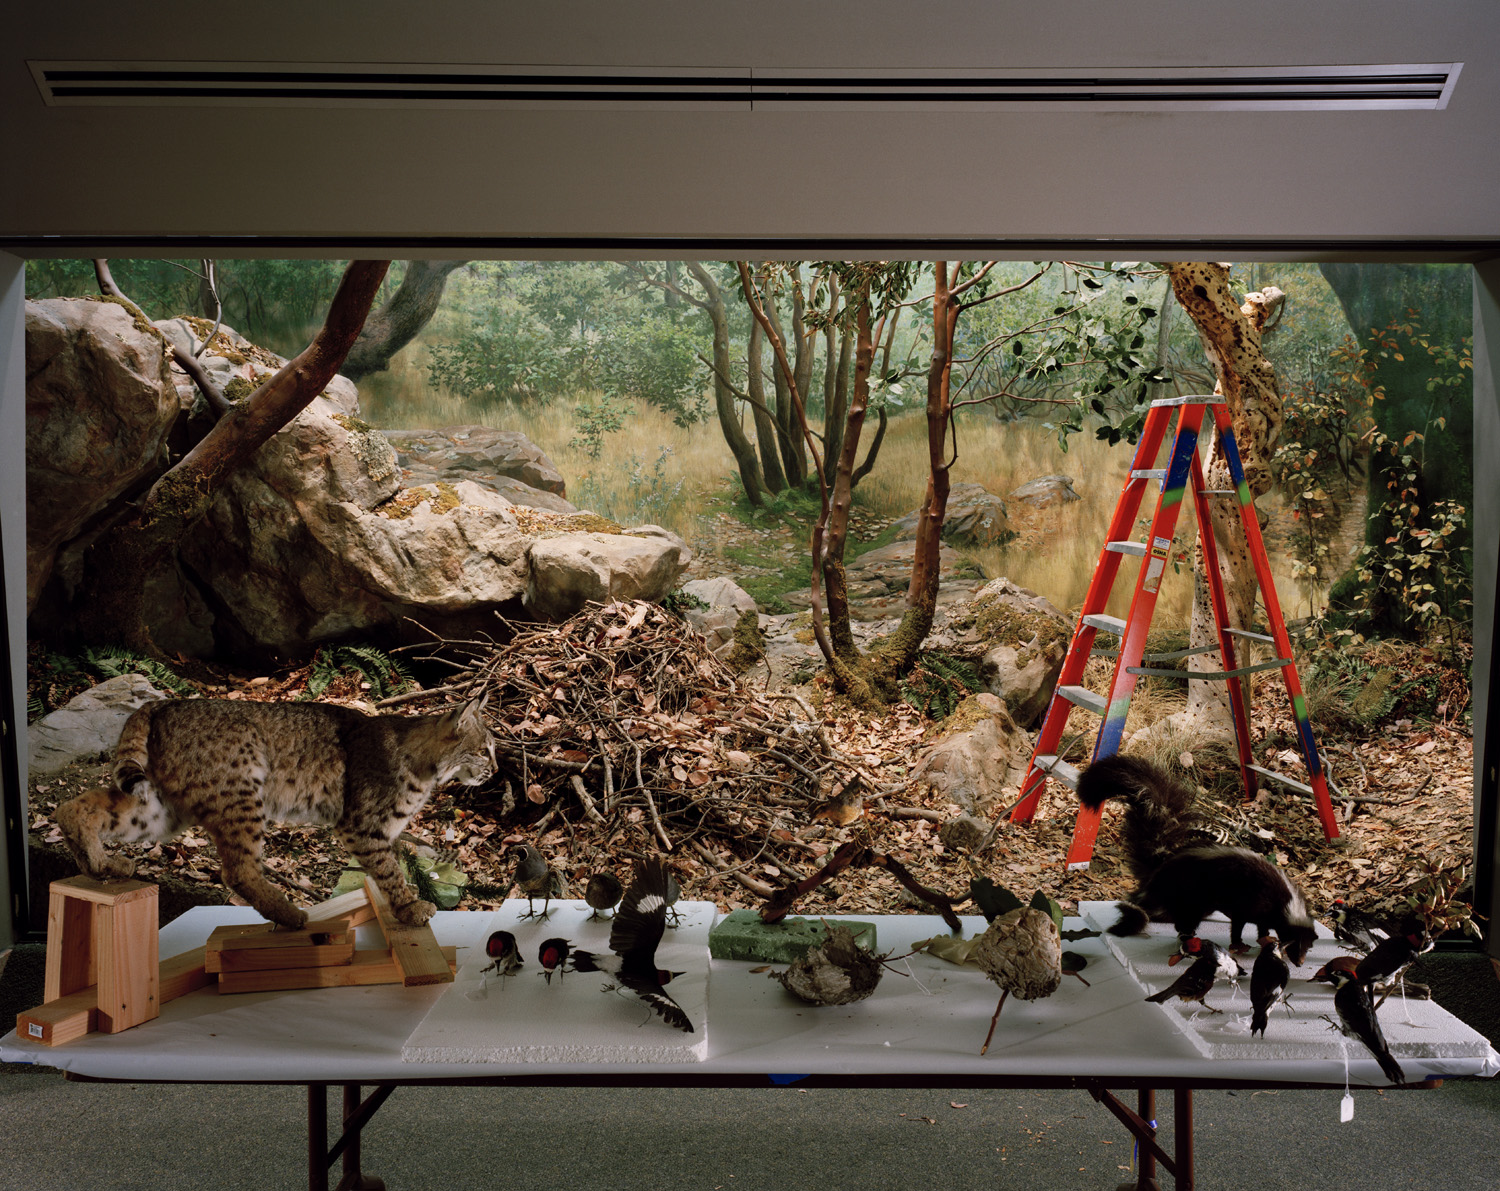 Diorama with Bobcat Removal, 2005